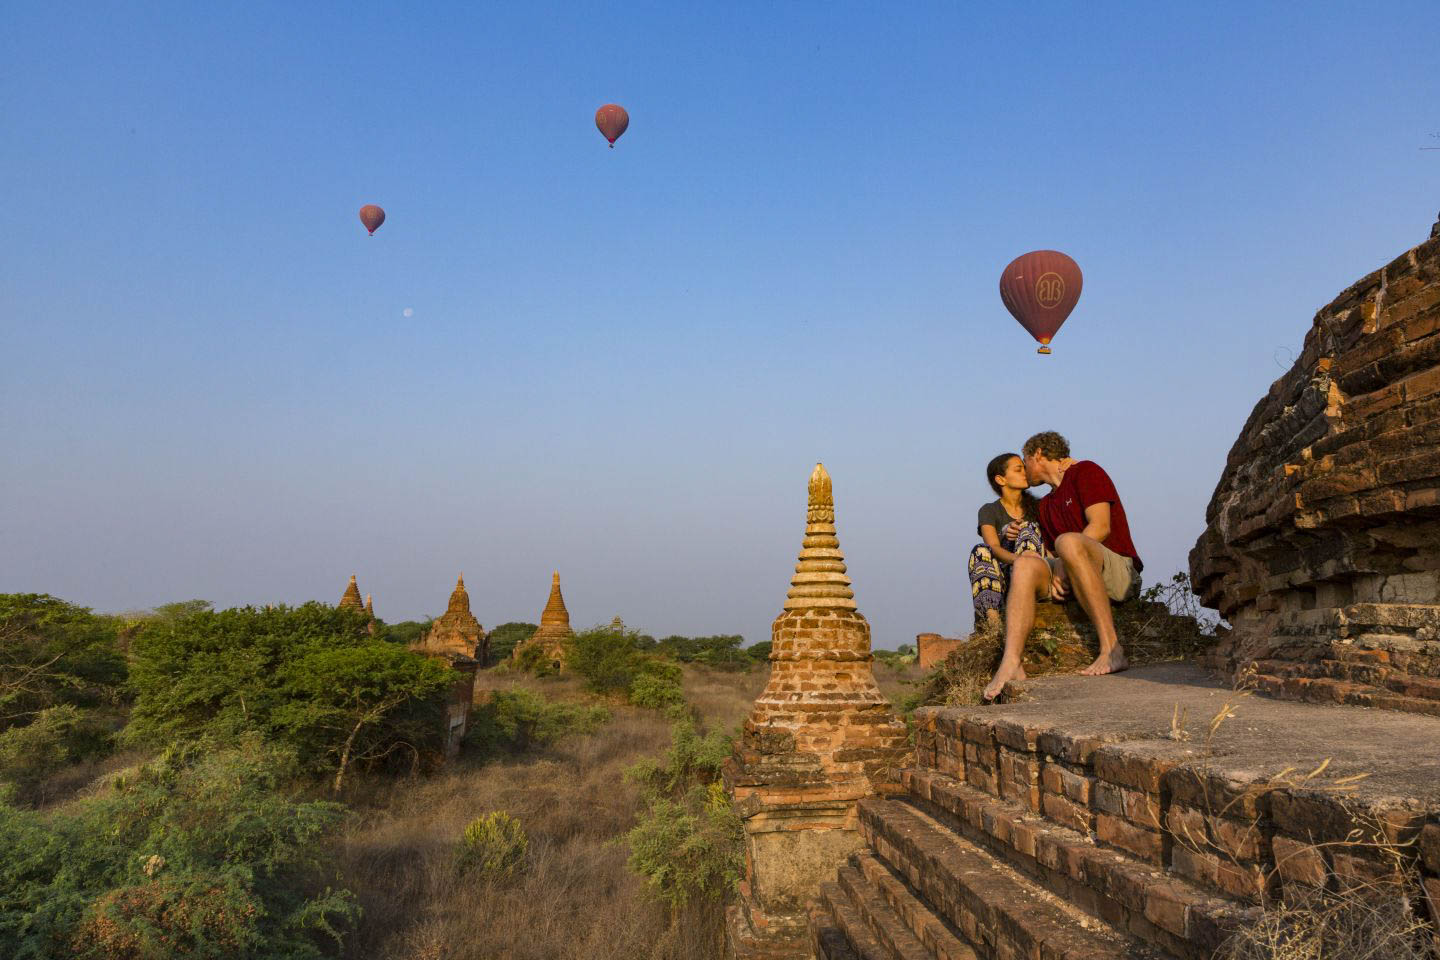 Balloons Over Bagan - one of the best experiences we've had in life was to watch baloons fly over 2,000 temples while the sun was rising.